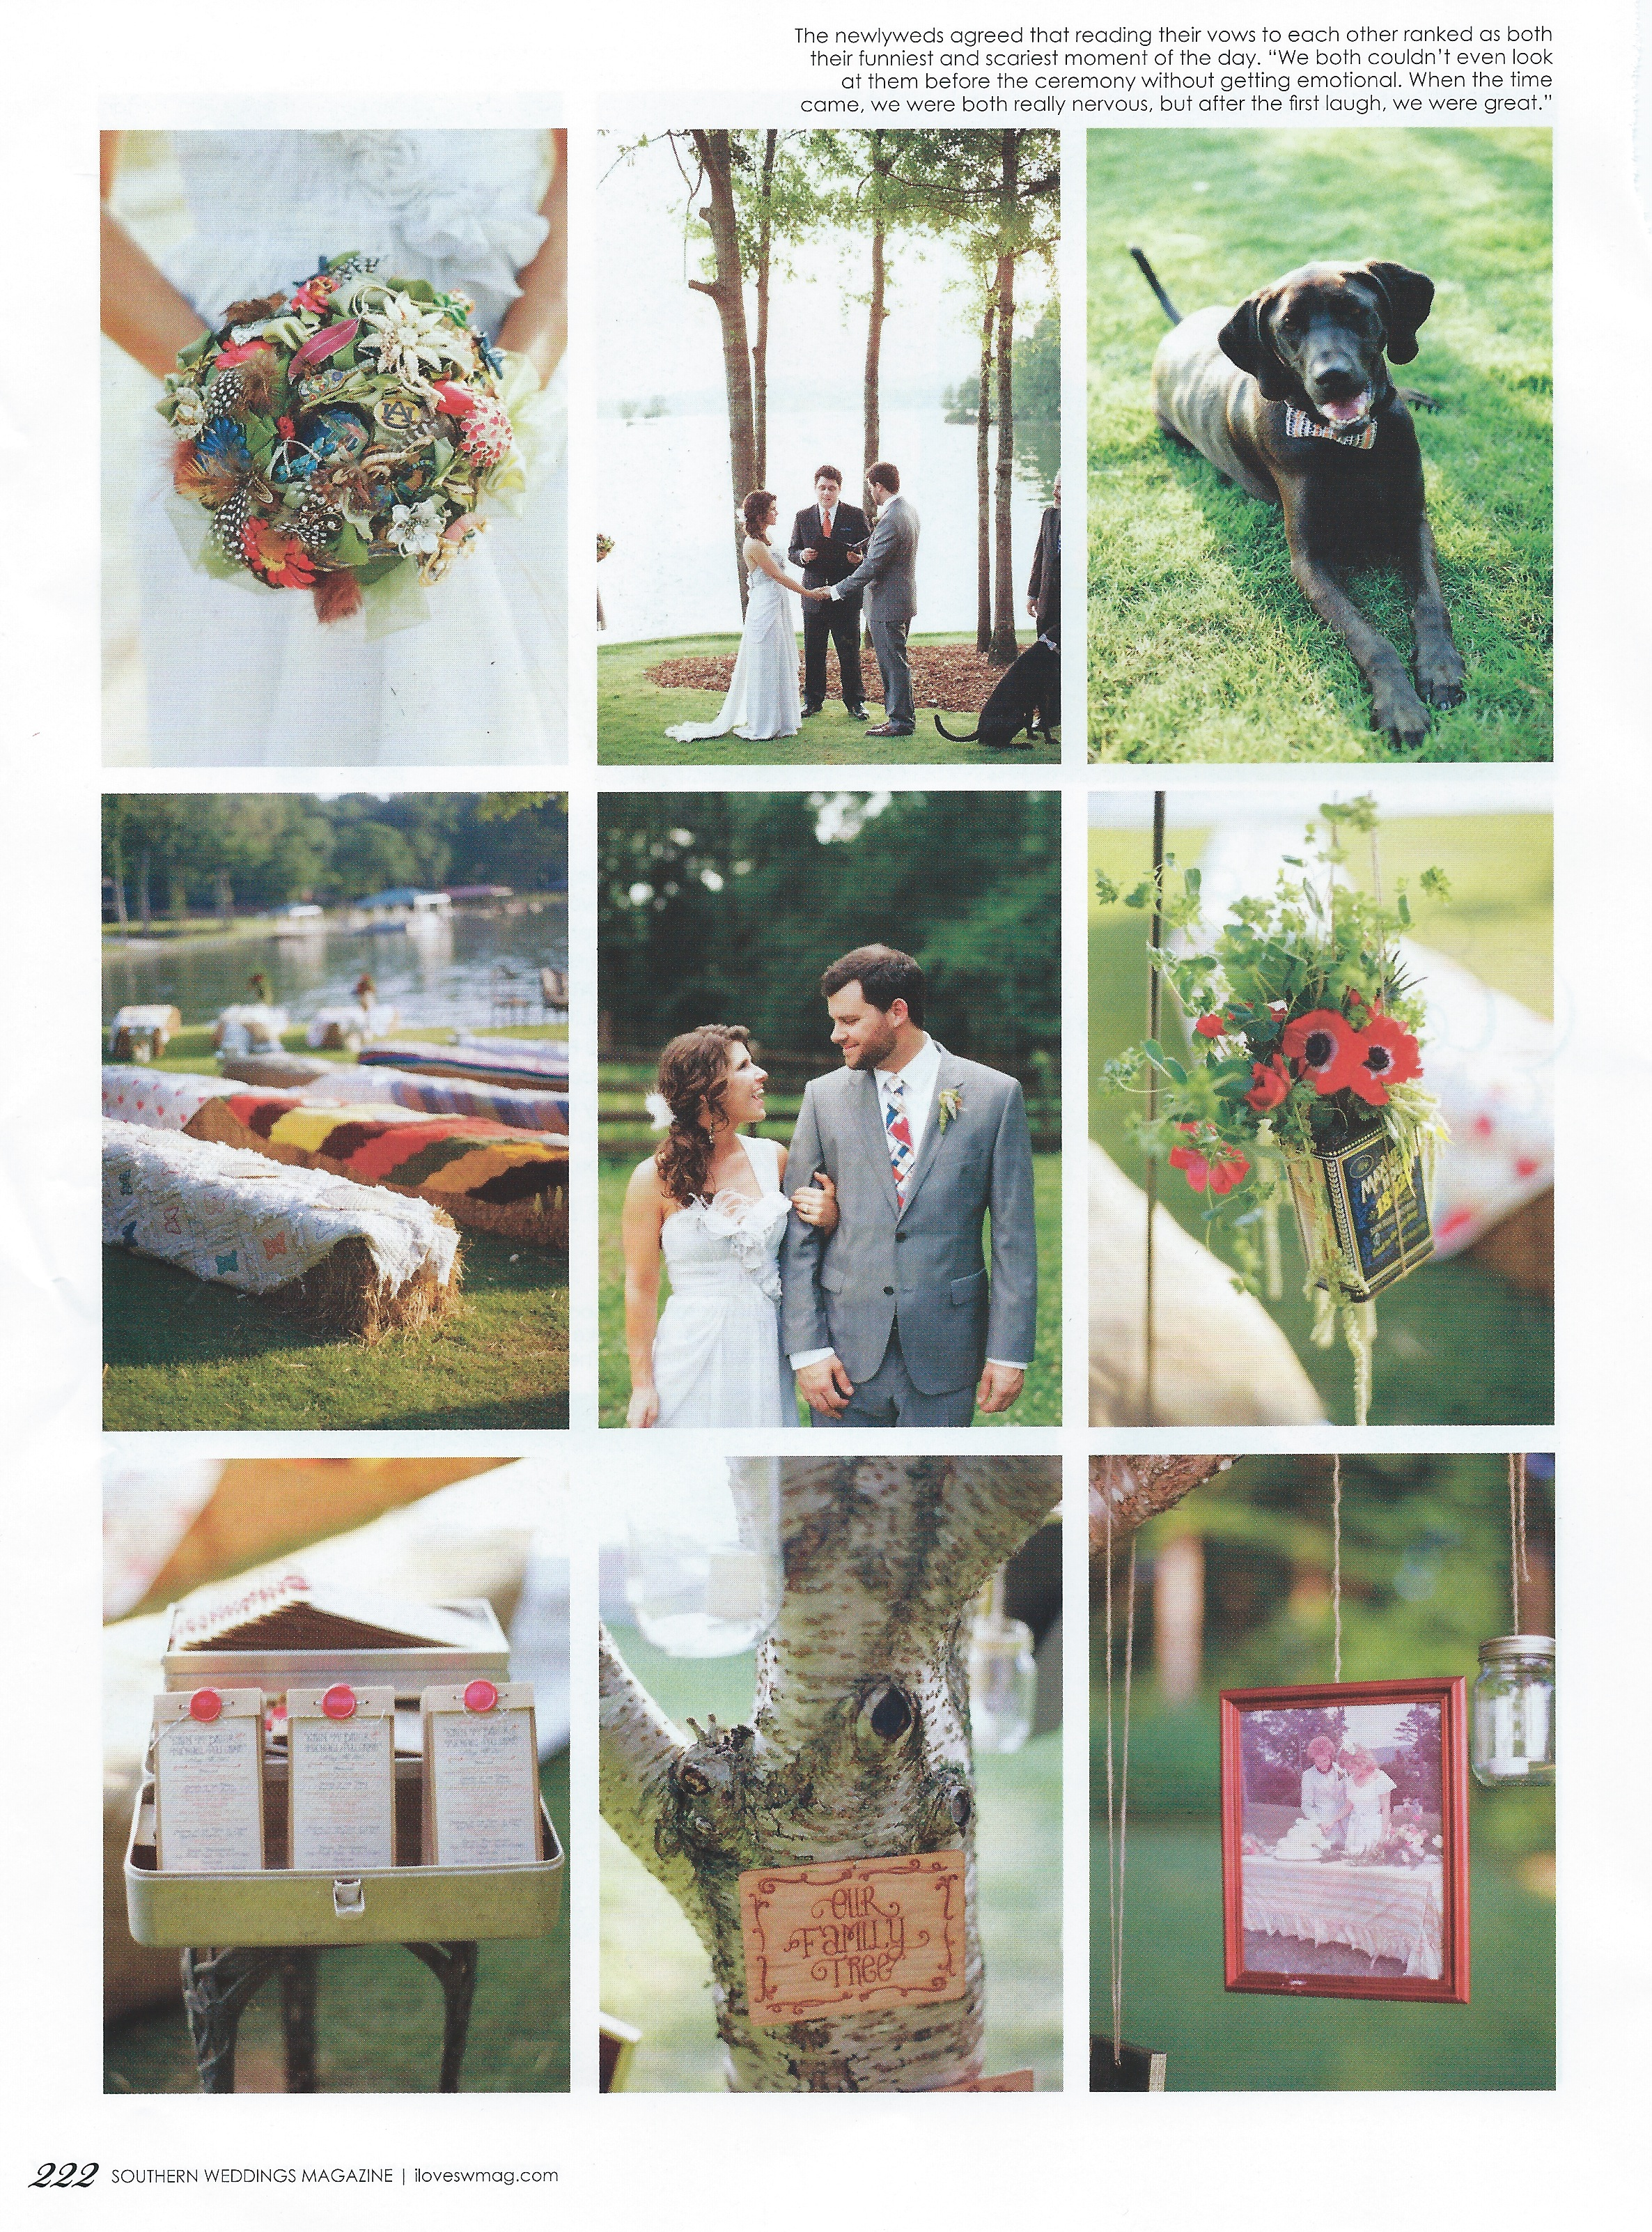 Southern Weddings - Spring 2013